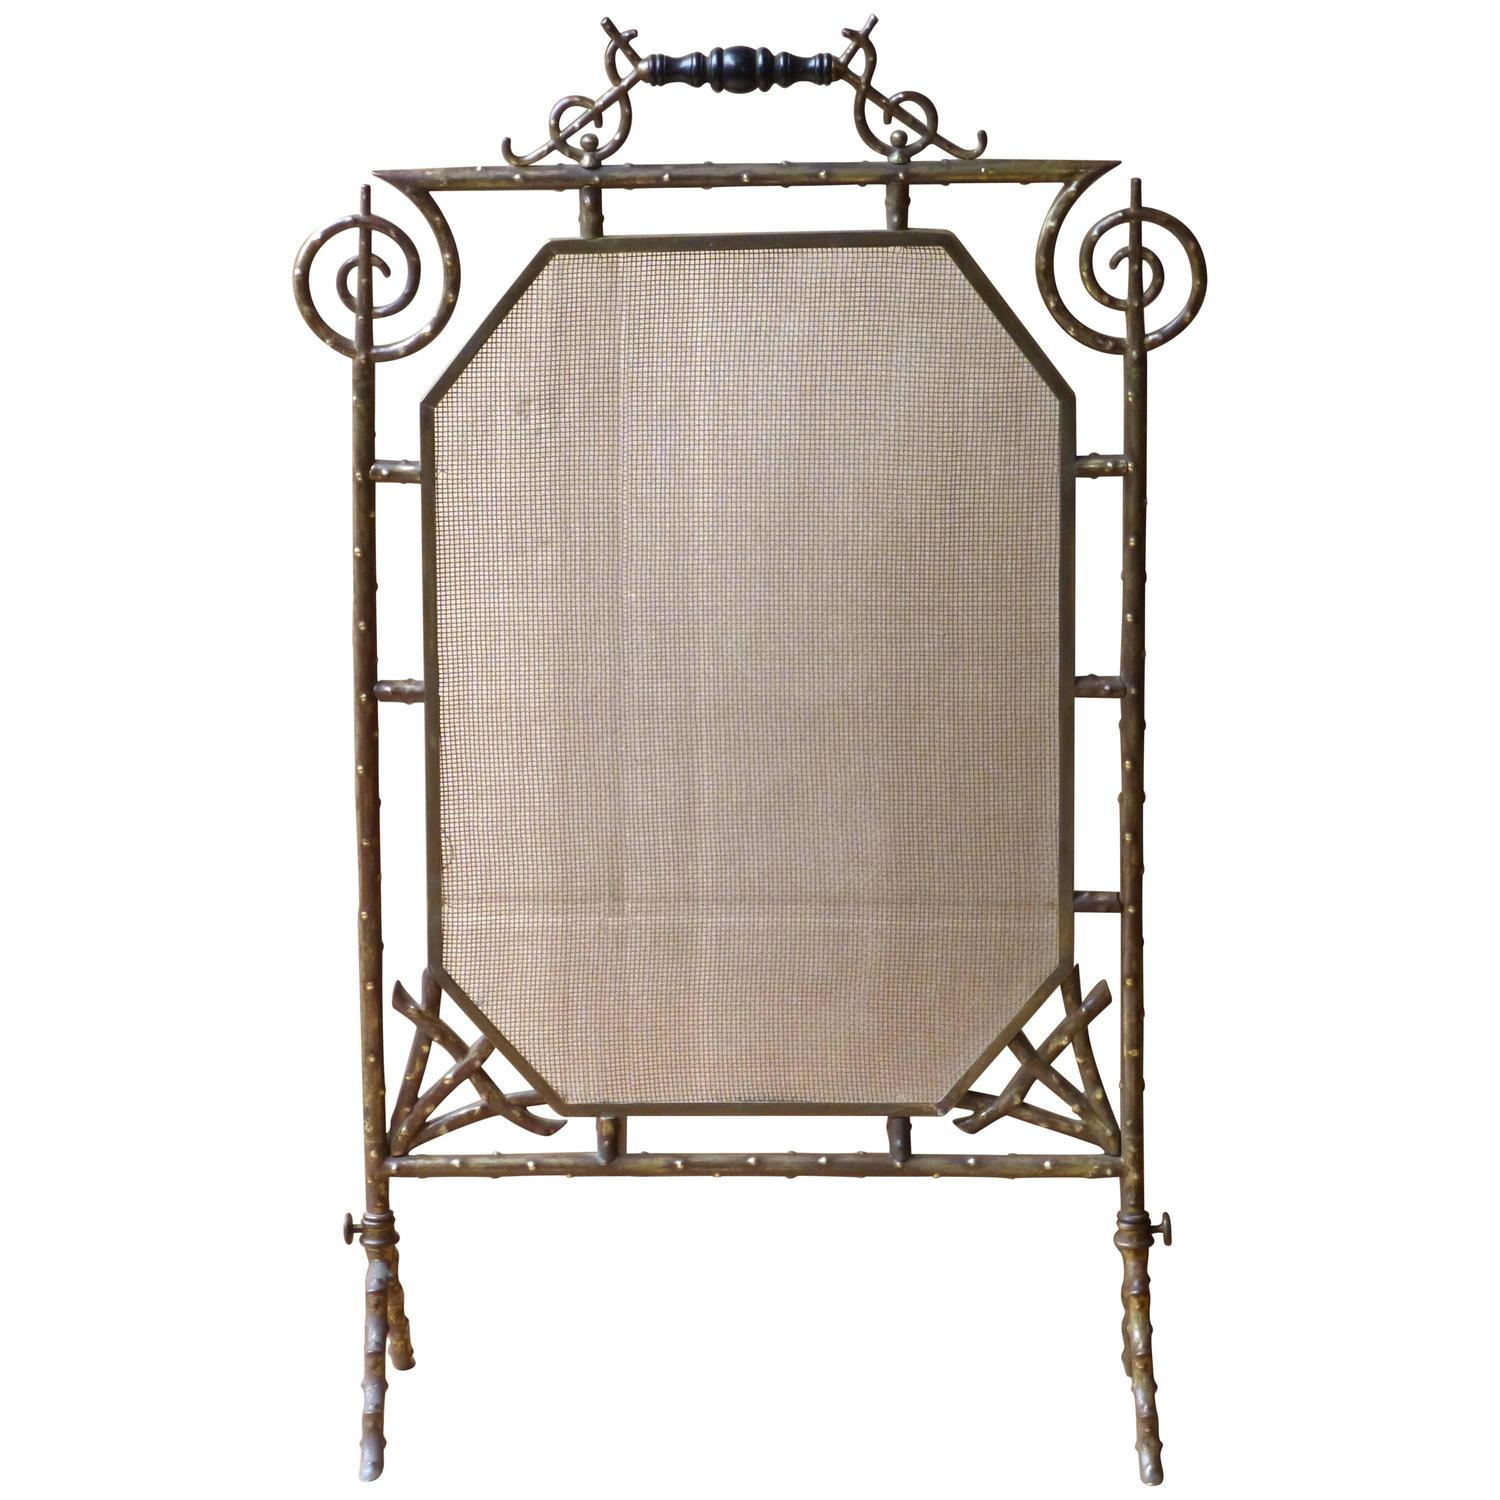 19th Century English Art Deco Fireplace Screen For Sale At 1stdibs